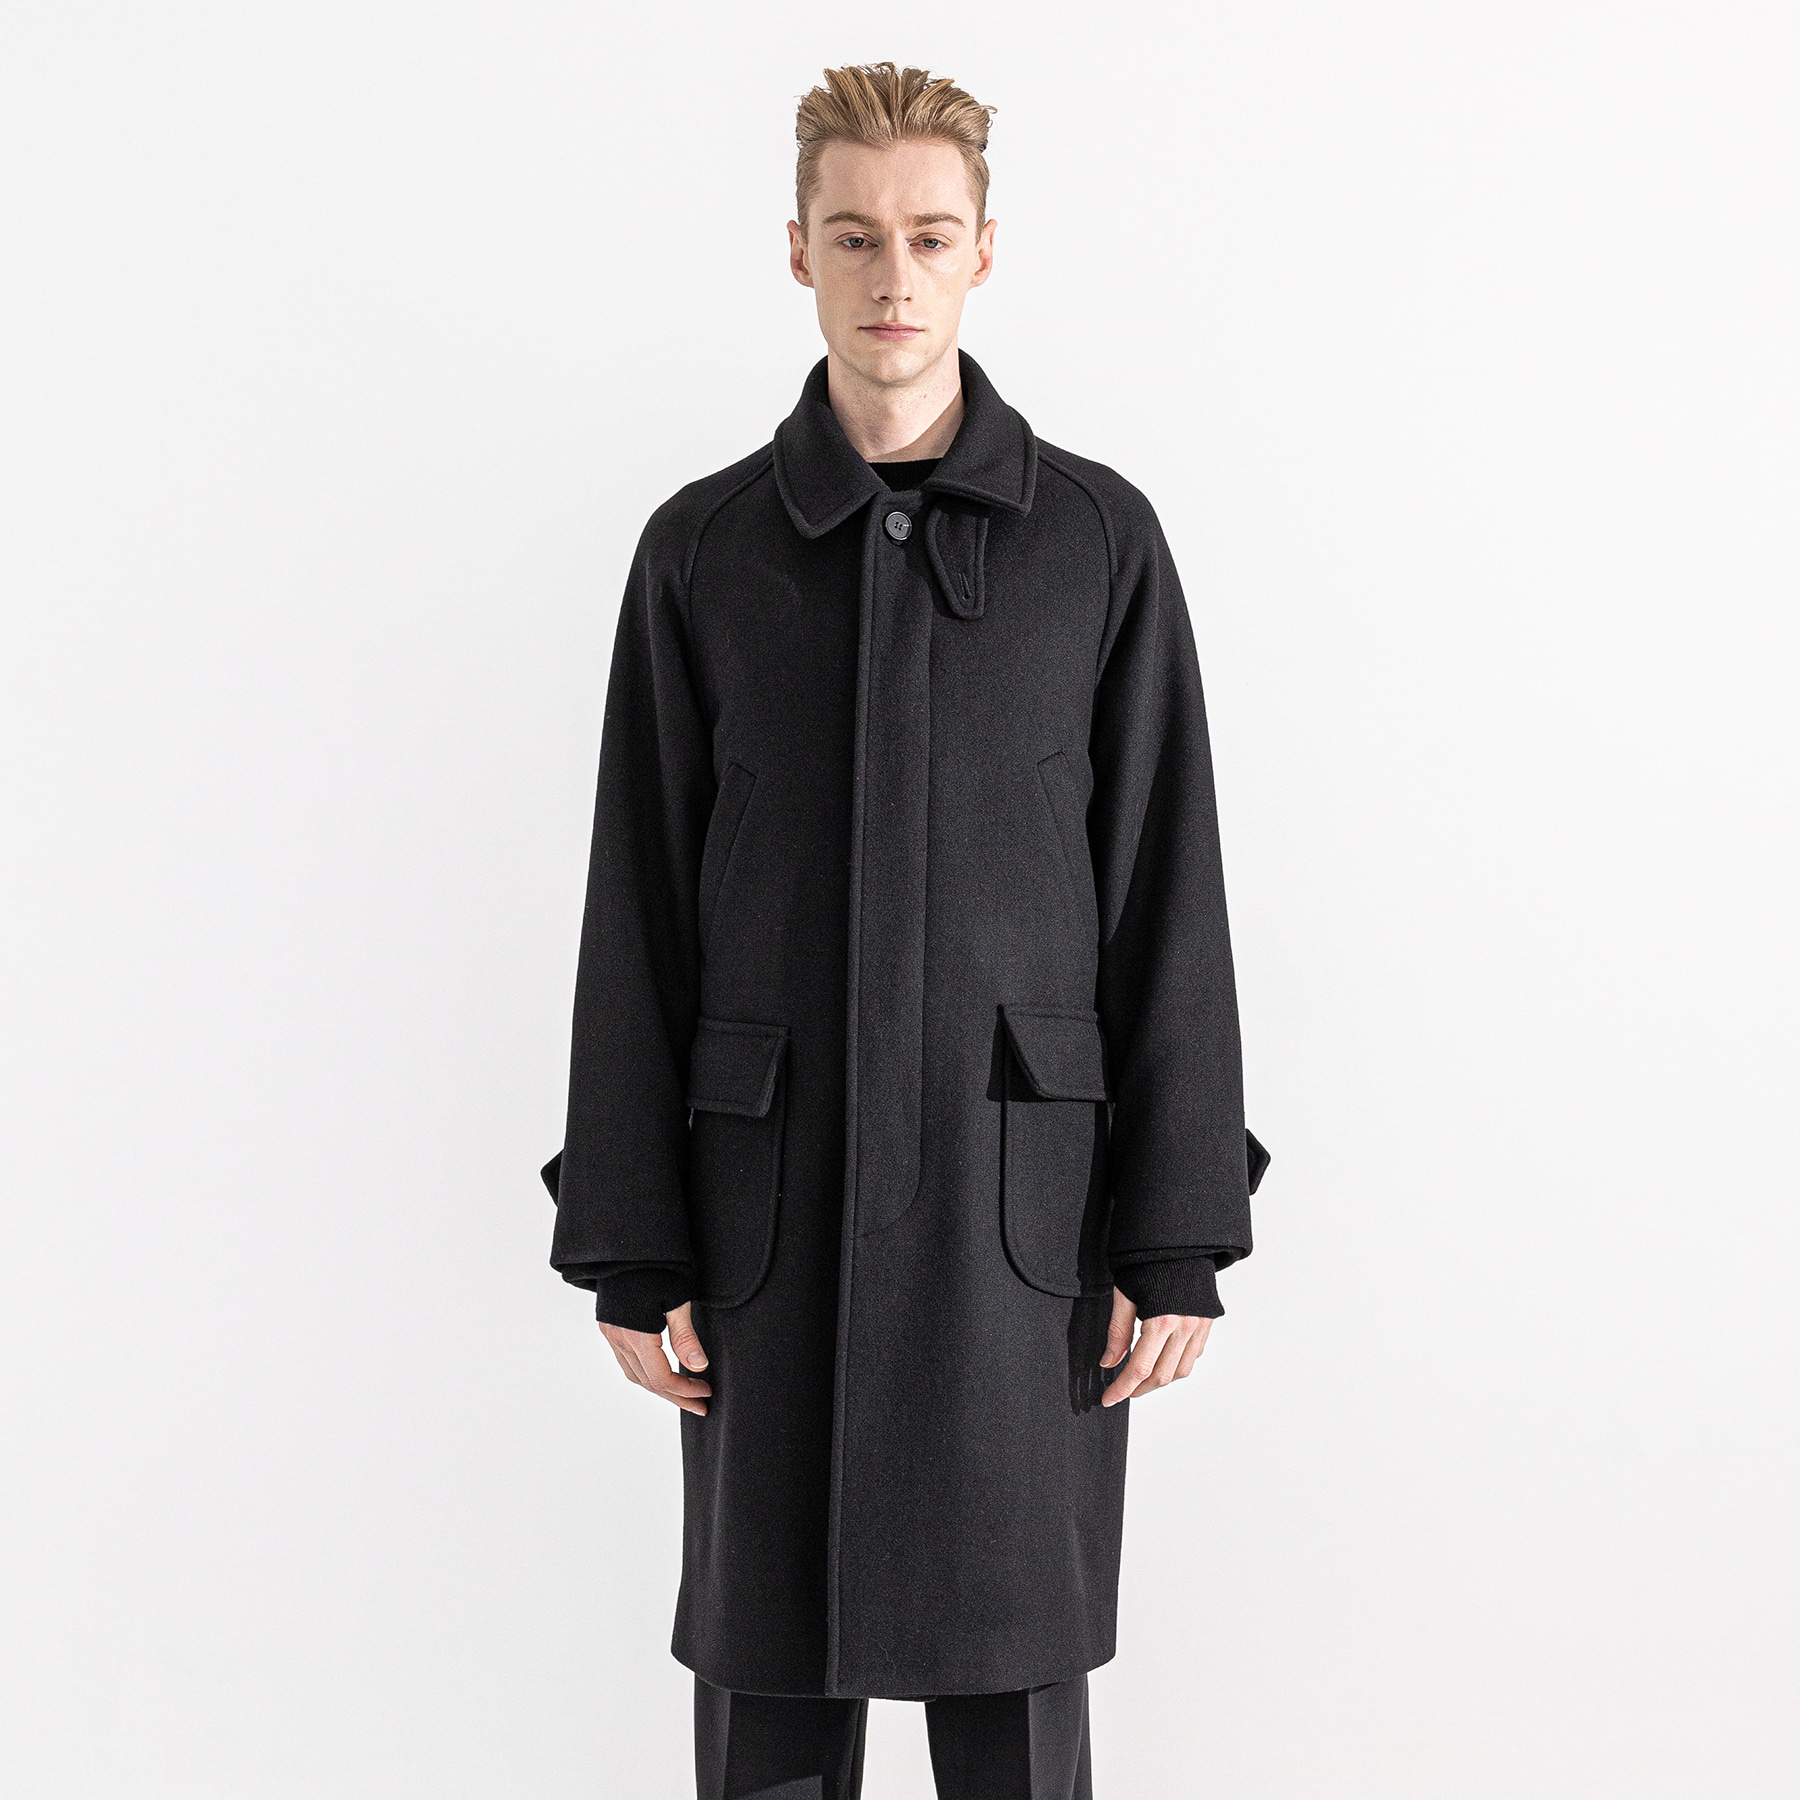 WEBPOCKET HIDDEN SNAP BALMACAAN WOOL COAT MWZCT004-BK